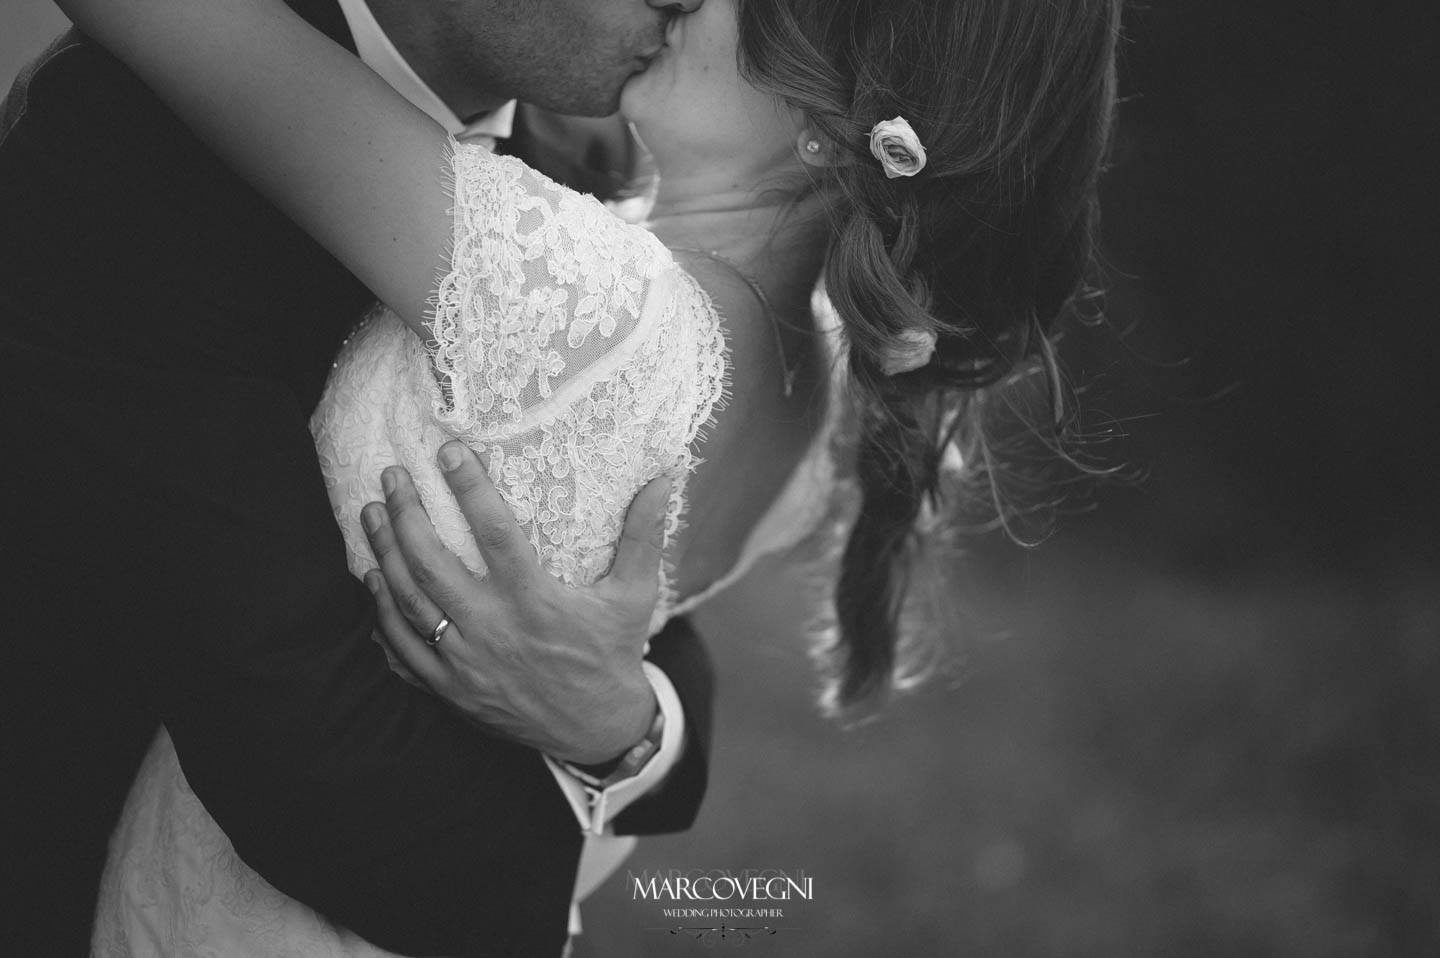 Wedding Umbria, Marco Vegni Photographer